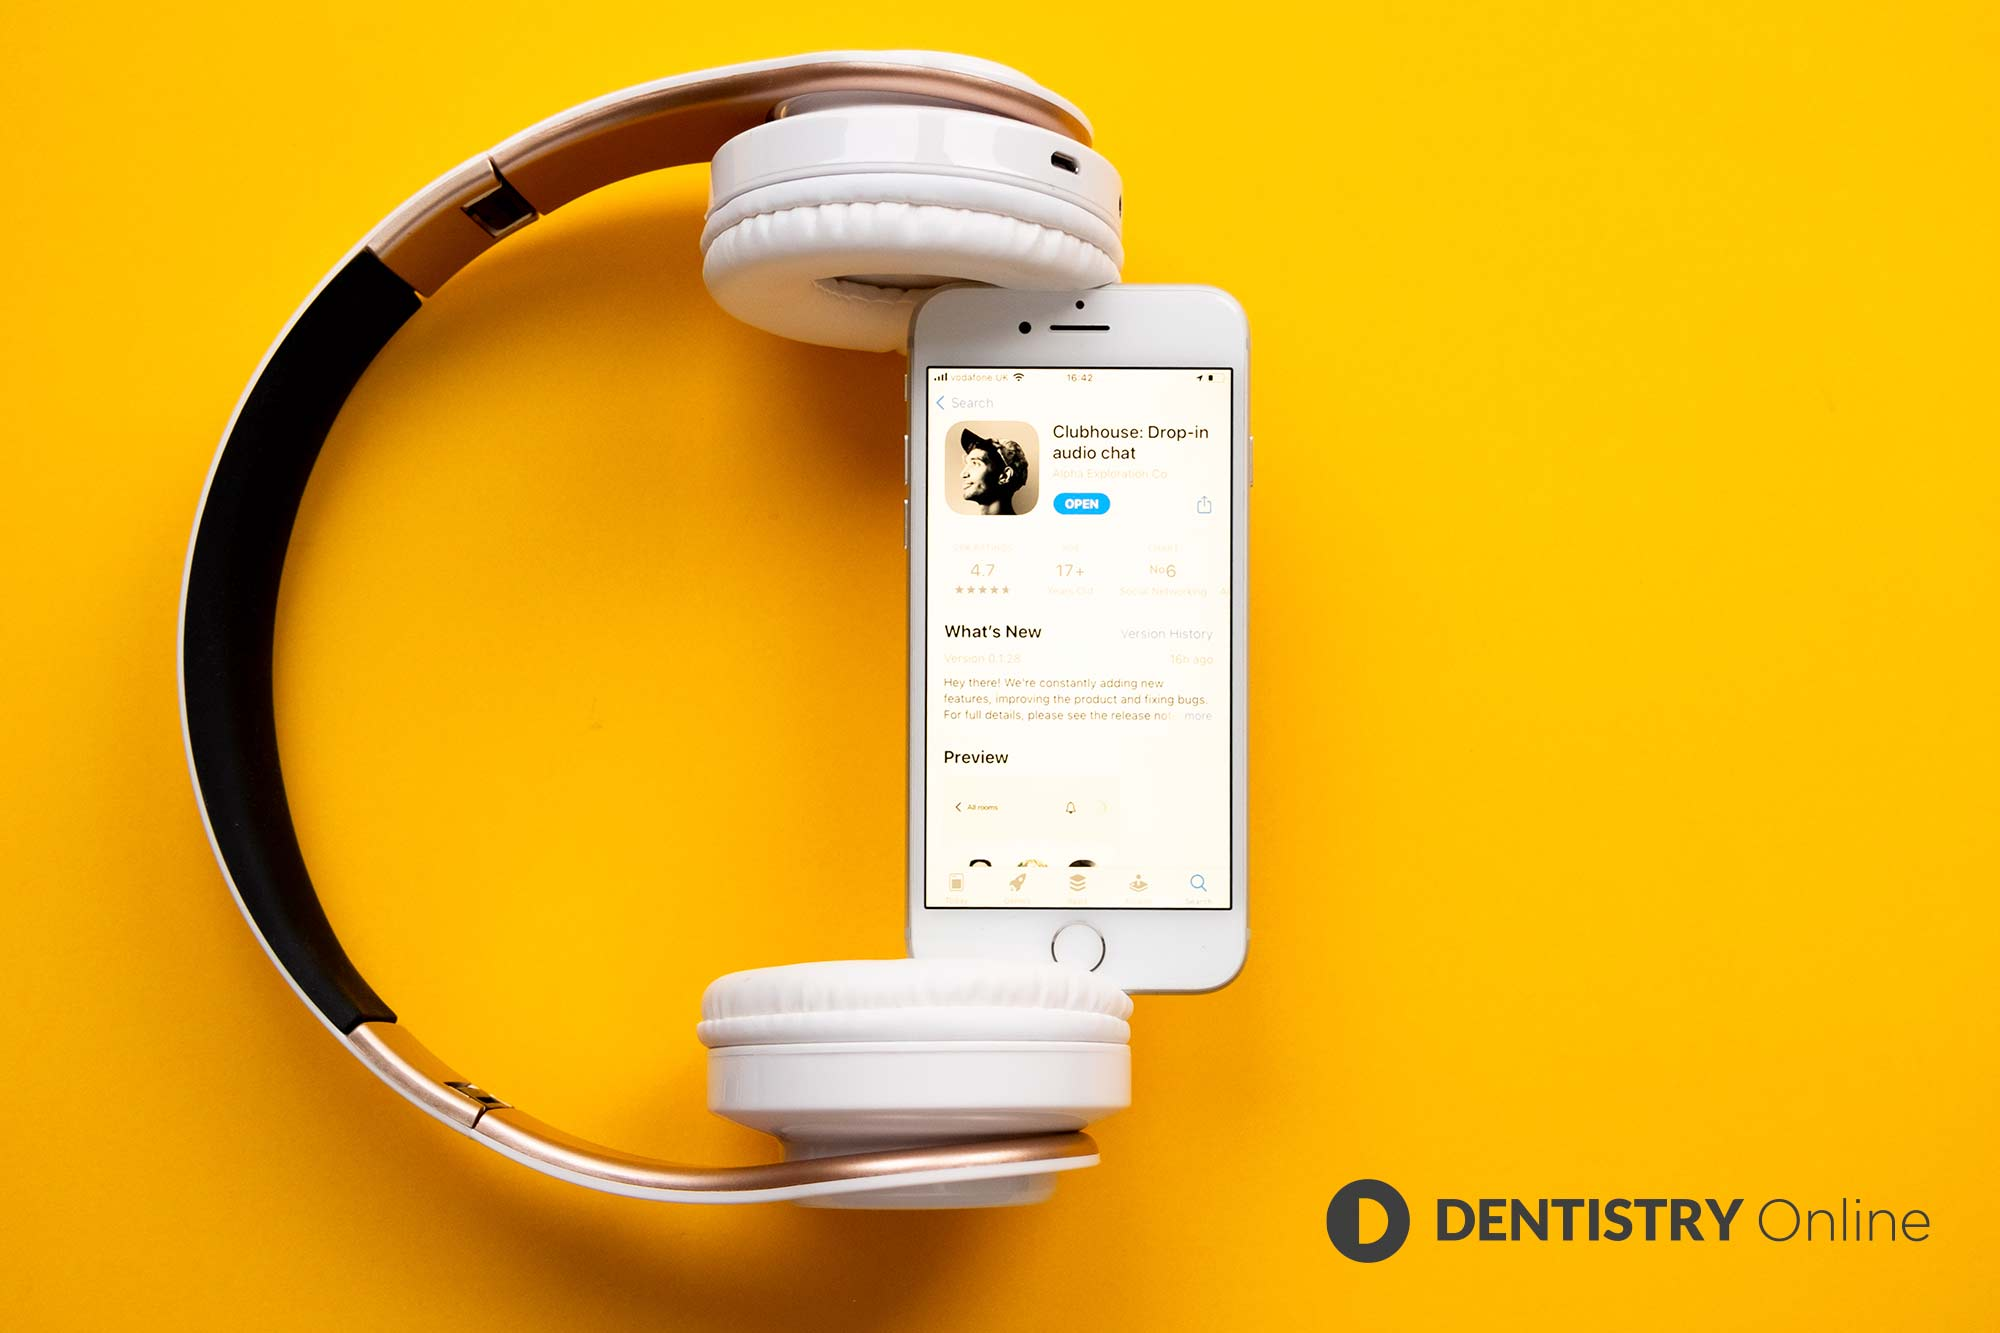 Andy Acton talks about the fast-growing app Clubhouse and why it's making an impression within business and dentistry